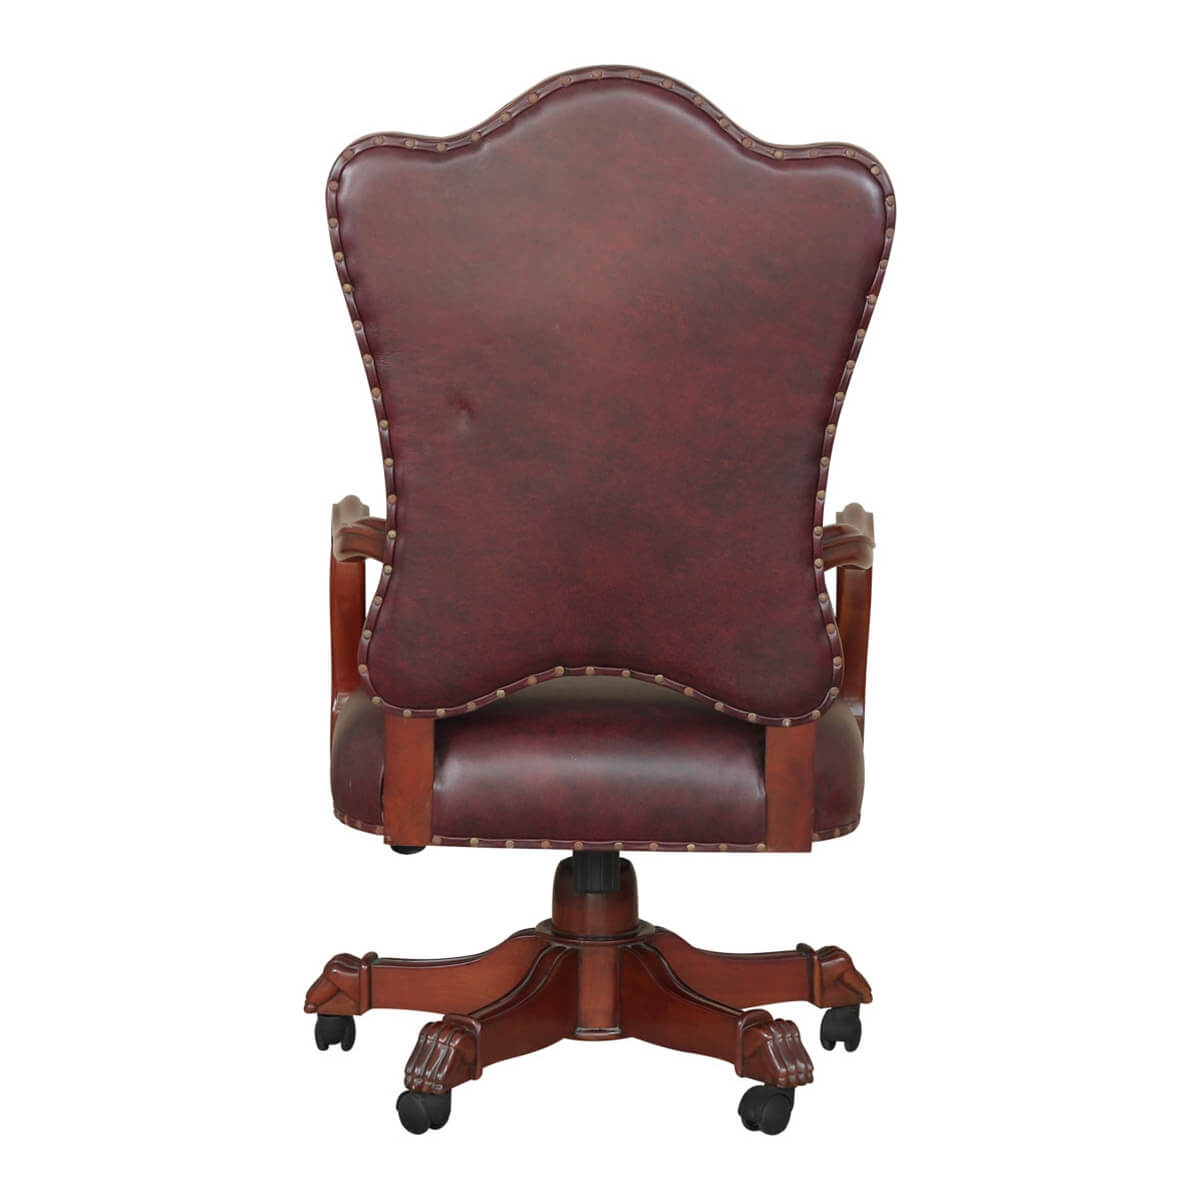 Wondrous Vonda Mahogany Wood Leather Tufted Rolling Executive Office Chair Short Links Chair Design For Home Short Linksinfo